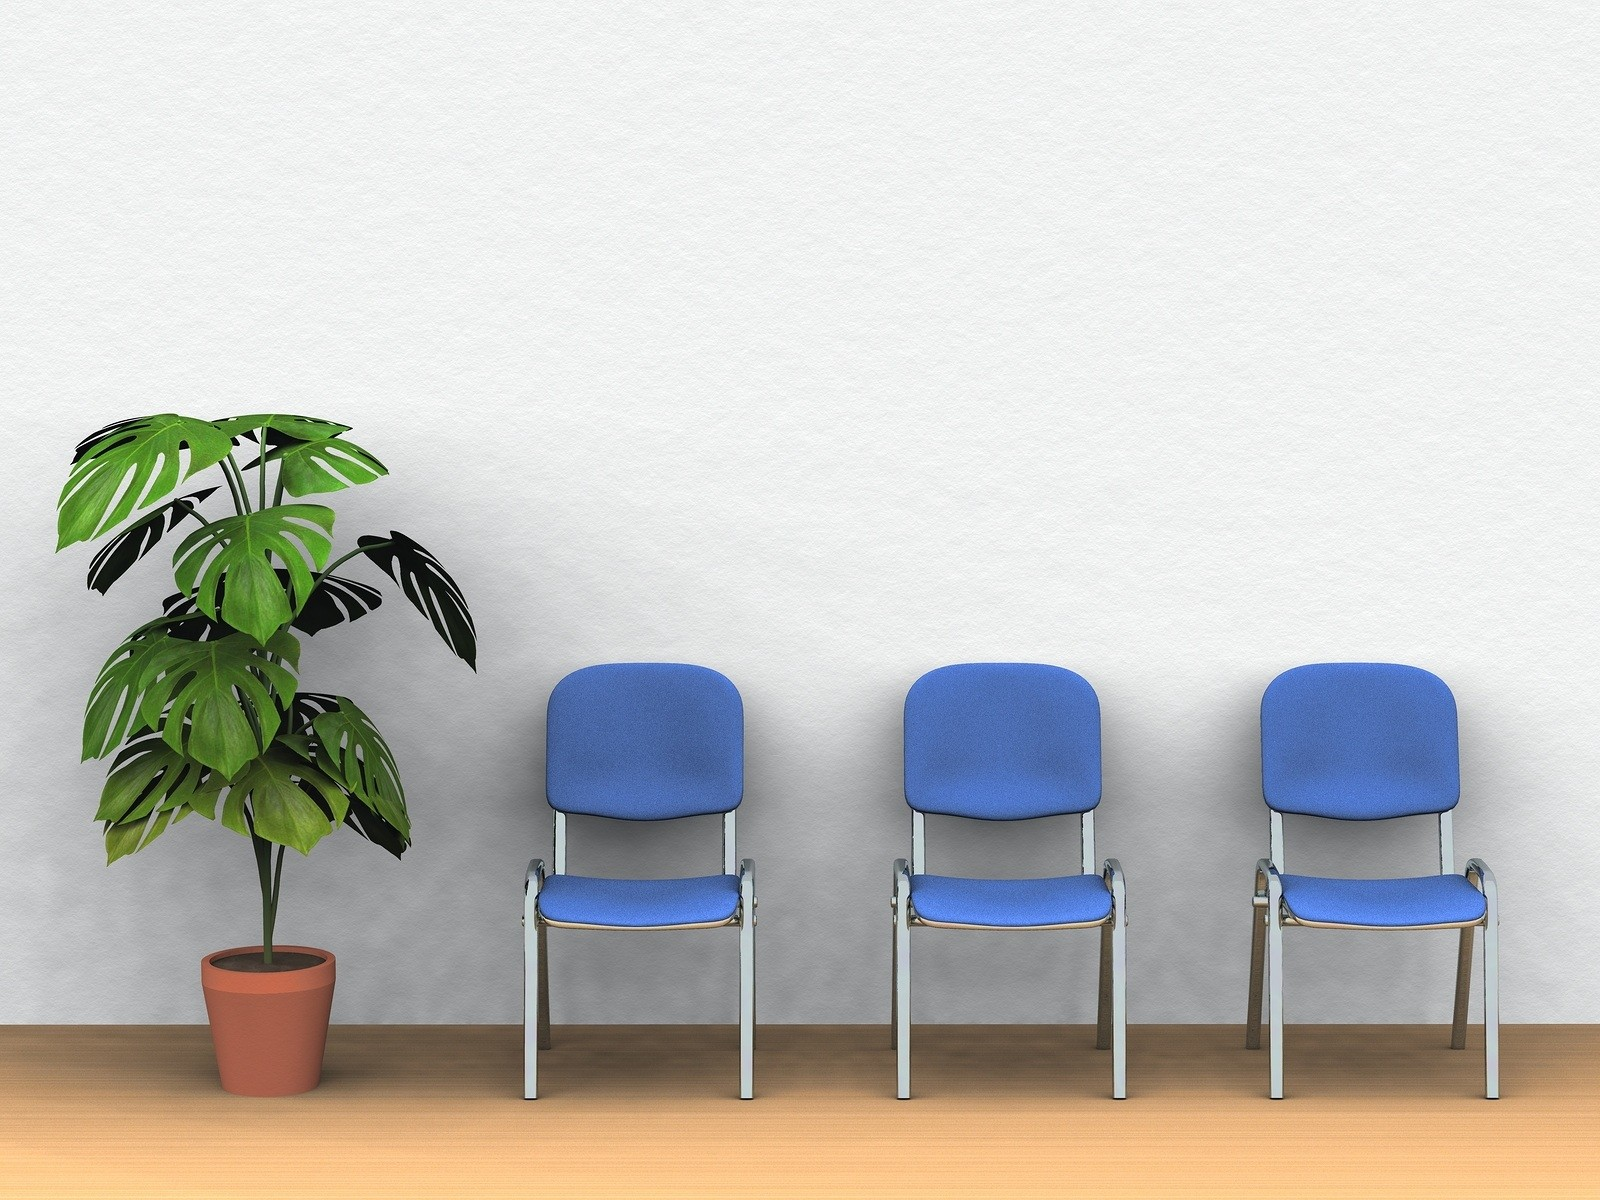 How to Get More Patient Referrals